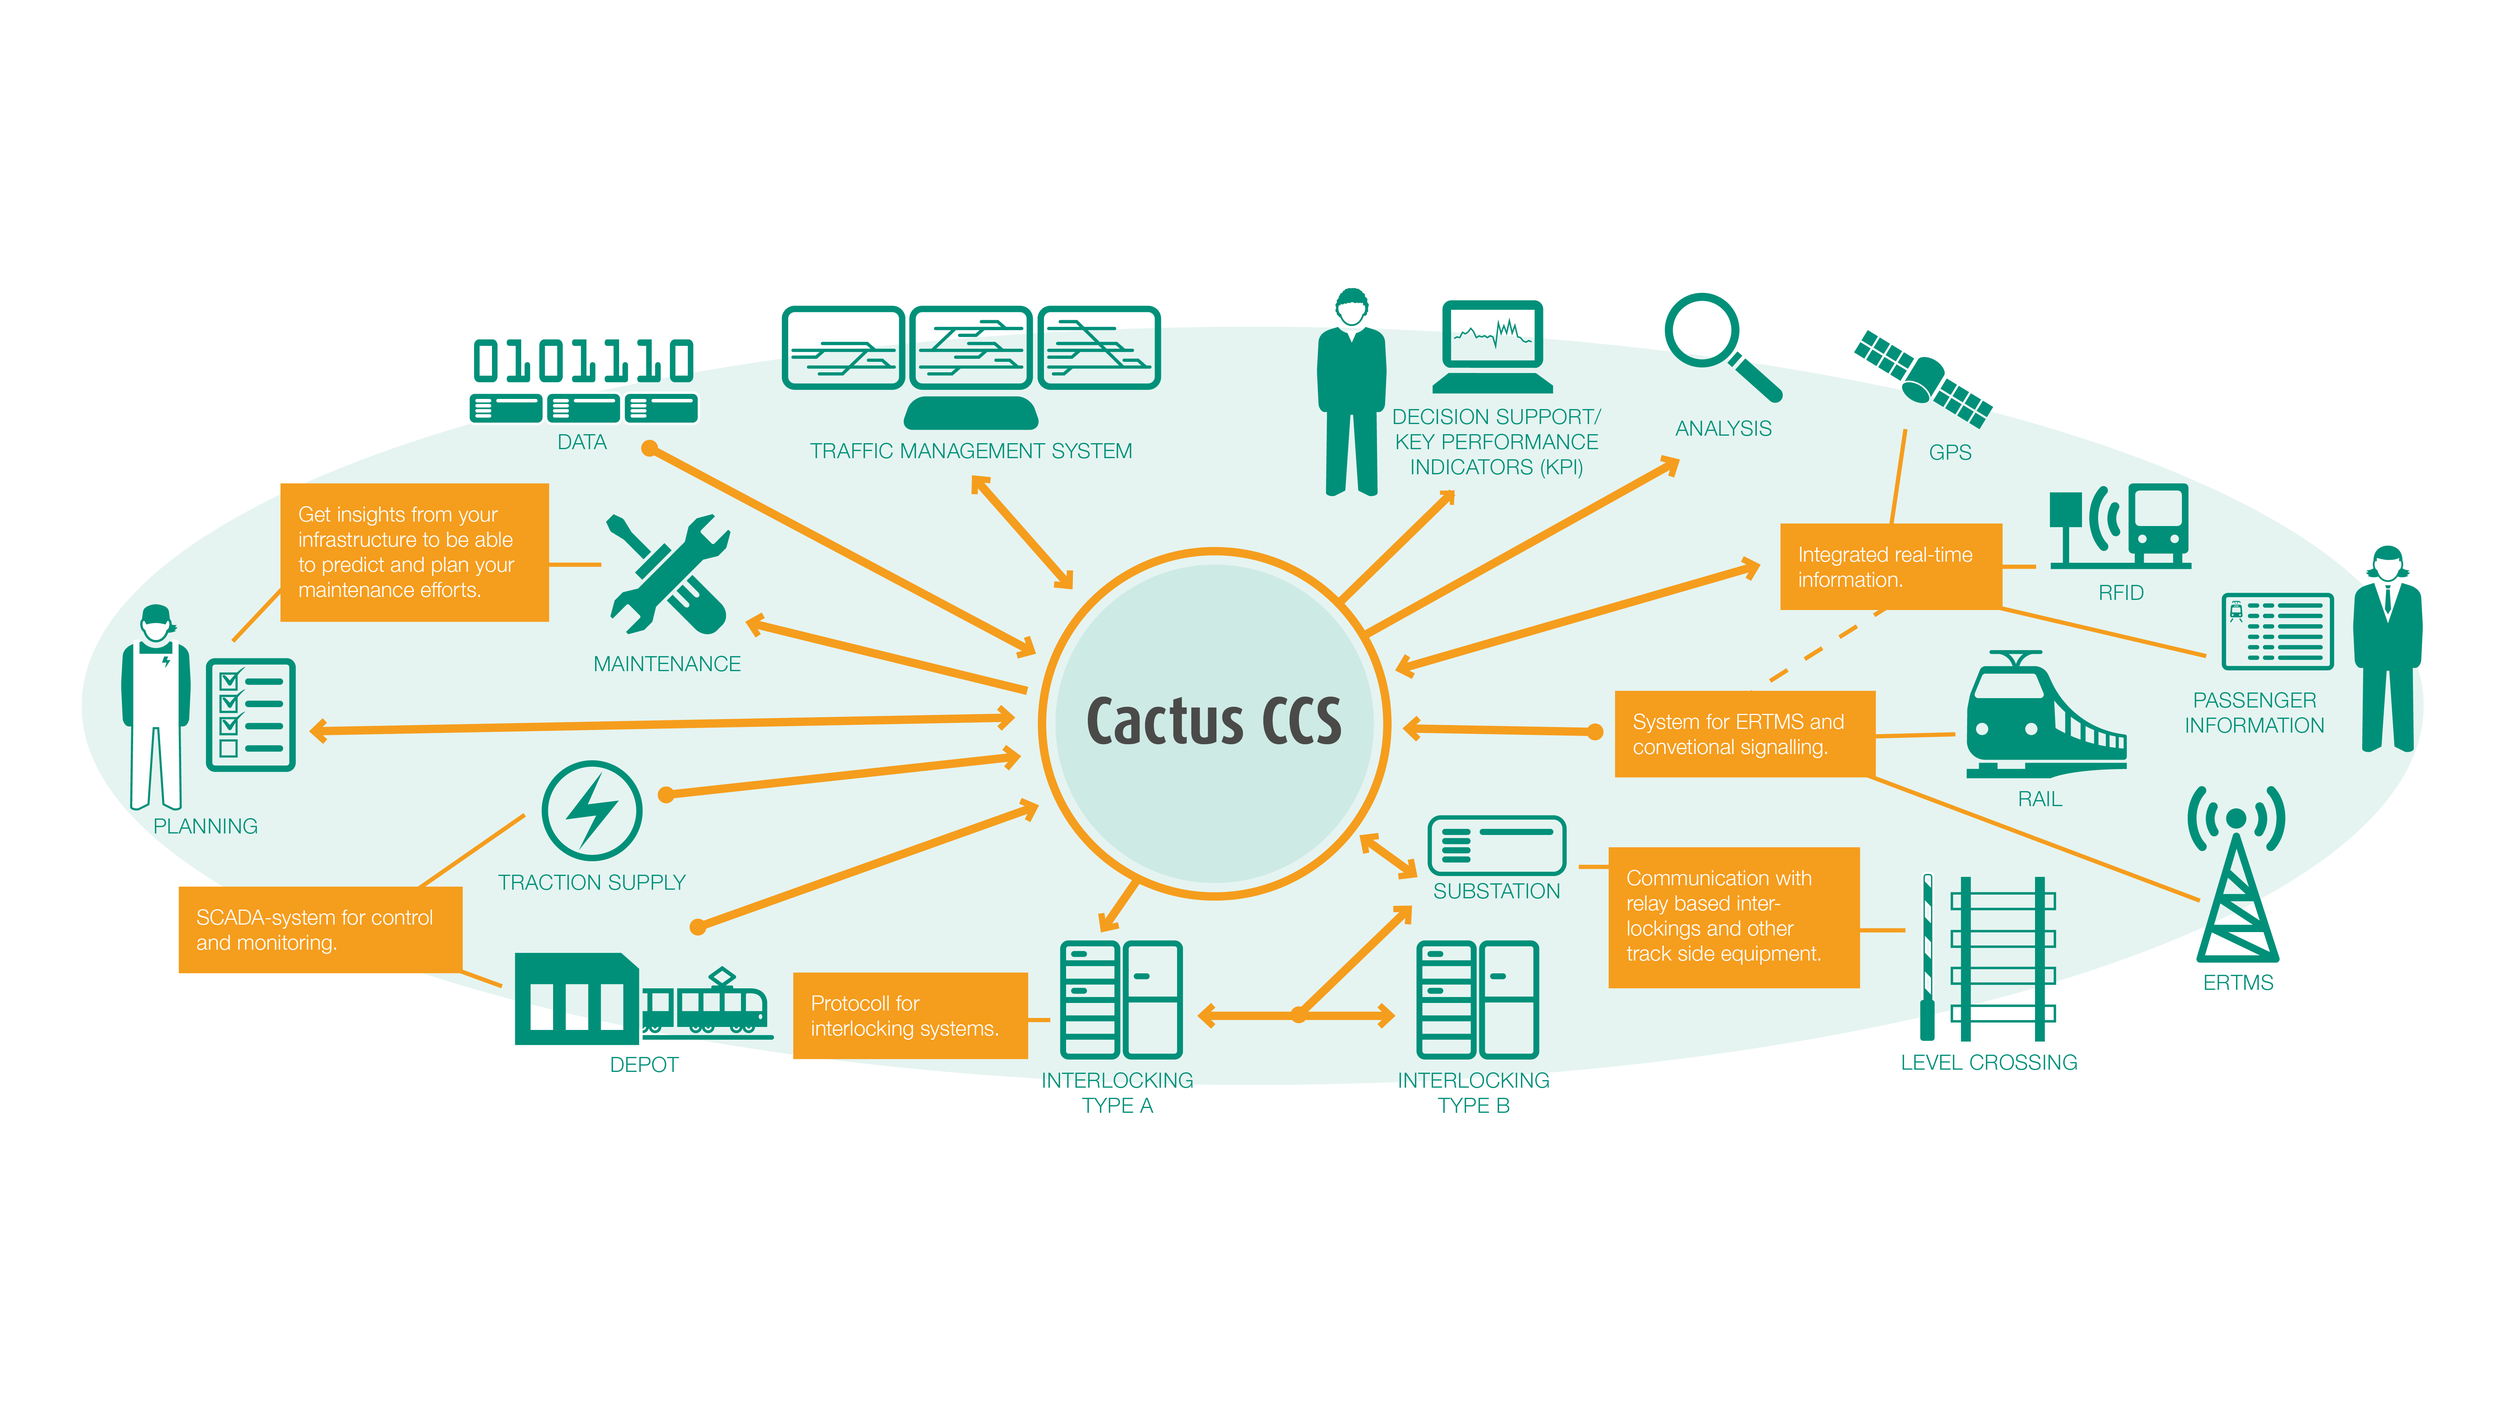 "Cactus CCS integration platform bridges silos and pulls down barriers. Previously isolated ""islands"" in your infrastructure can now be integrated. Cactus CCS connects OT – Operational Technology – with IT. For the first time, your EAM and ERP systems can get valuable statistics and data from far away in your operations – deep down in the infrastructure."